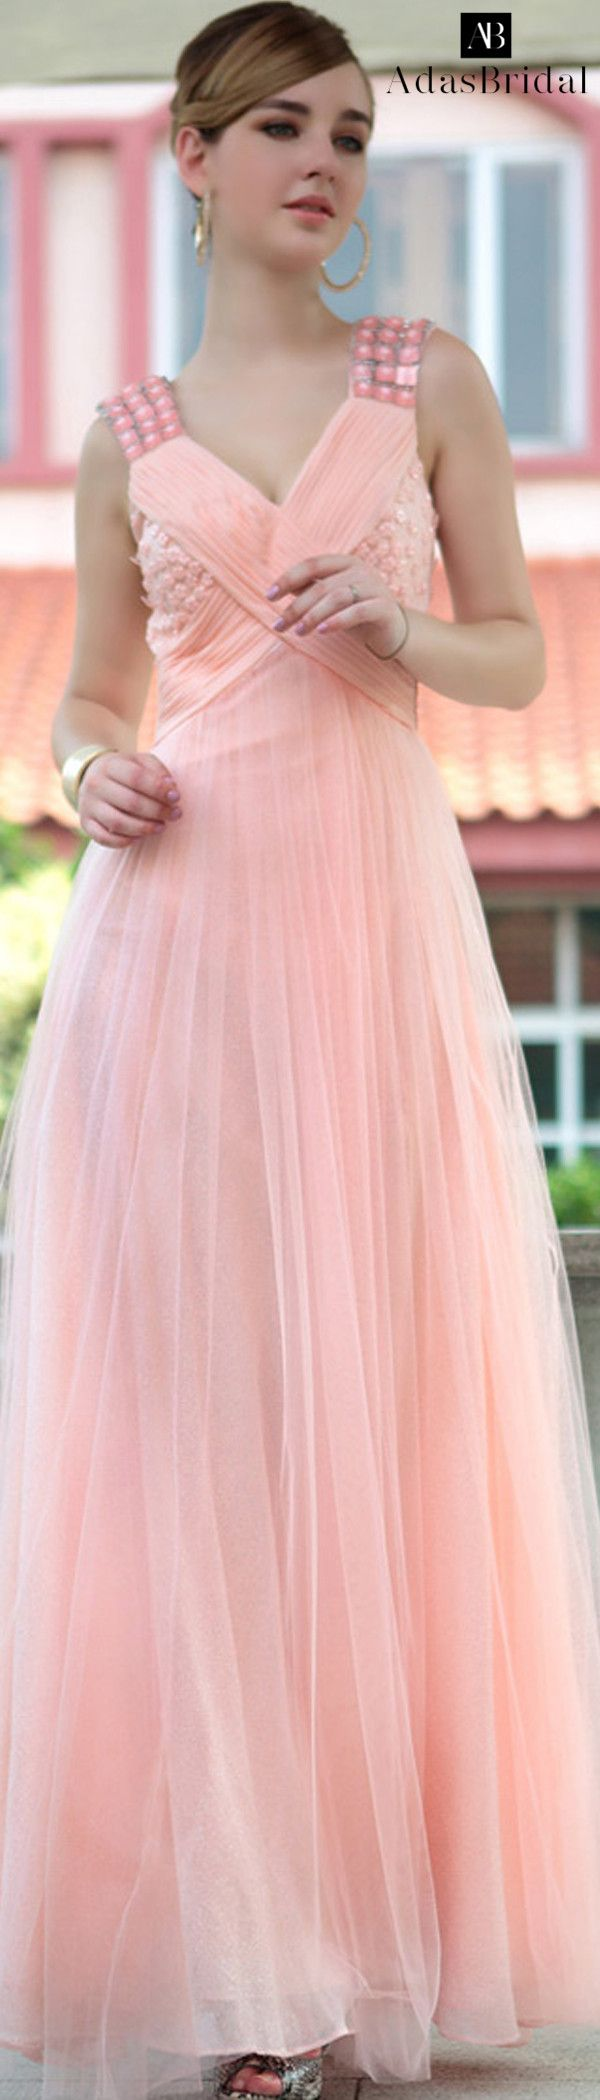 9 best Vestidos images on Pinterest | Ball gown, Cute dresses and ...